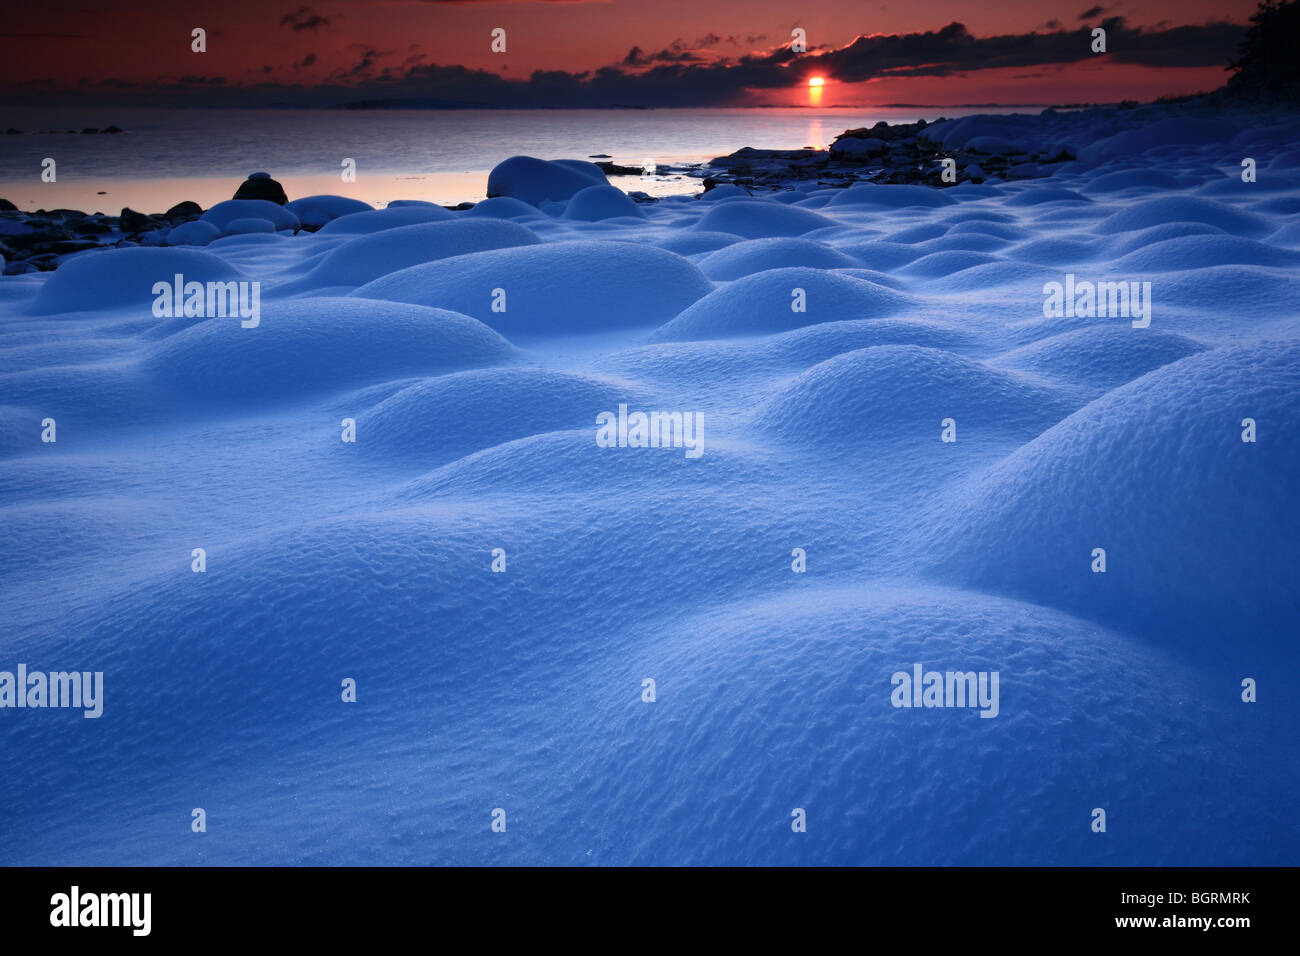 Snow covered rocks and sundown at Larkollen in Rygge kommune, Østfold fylke, Norway. - Stock Image